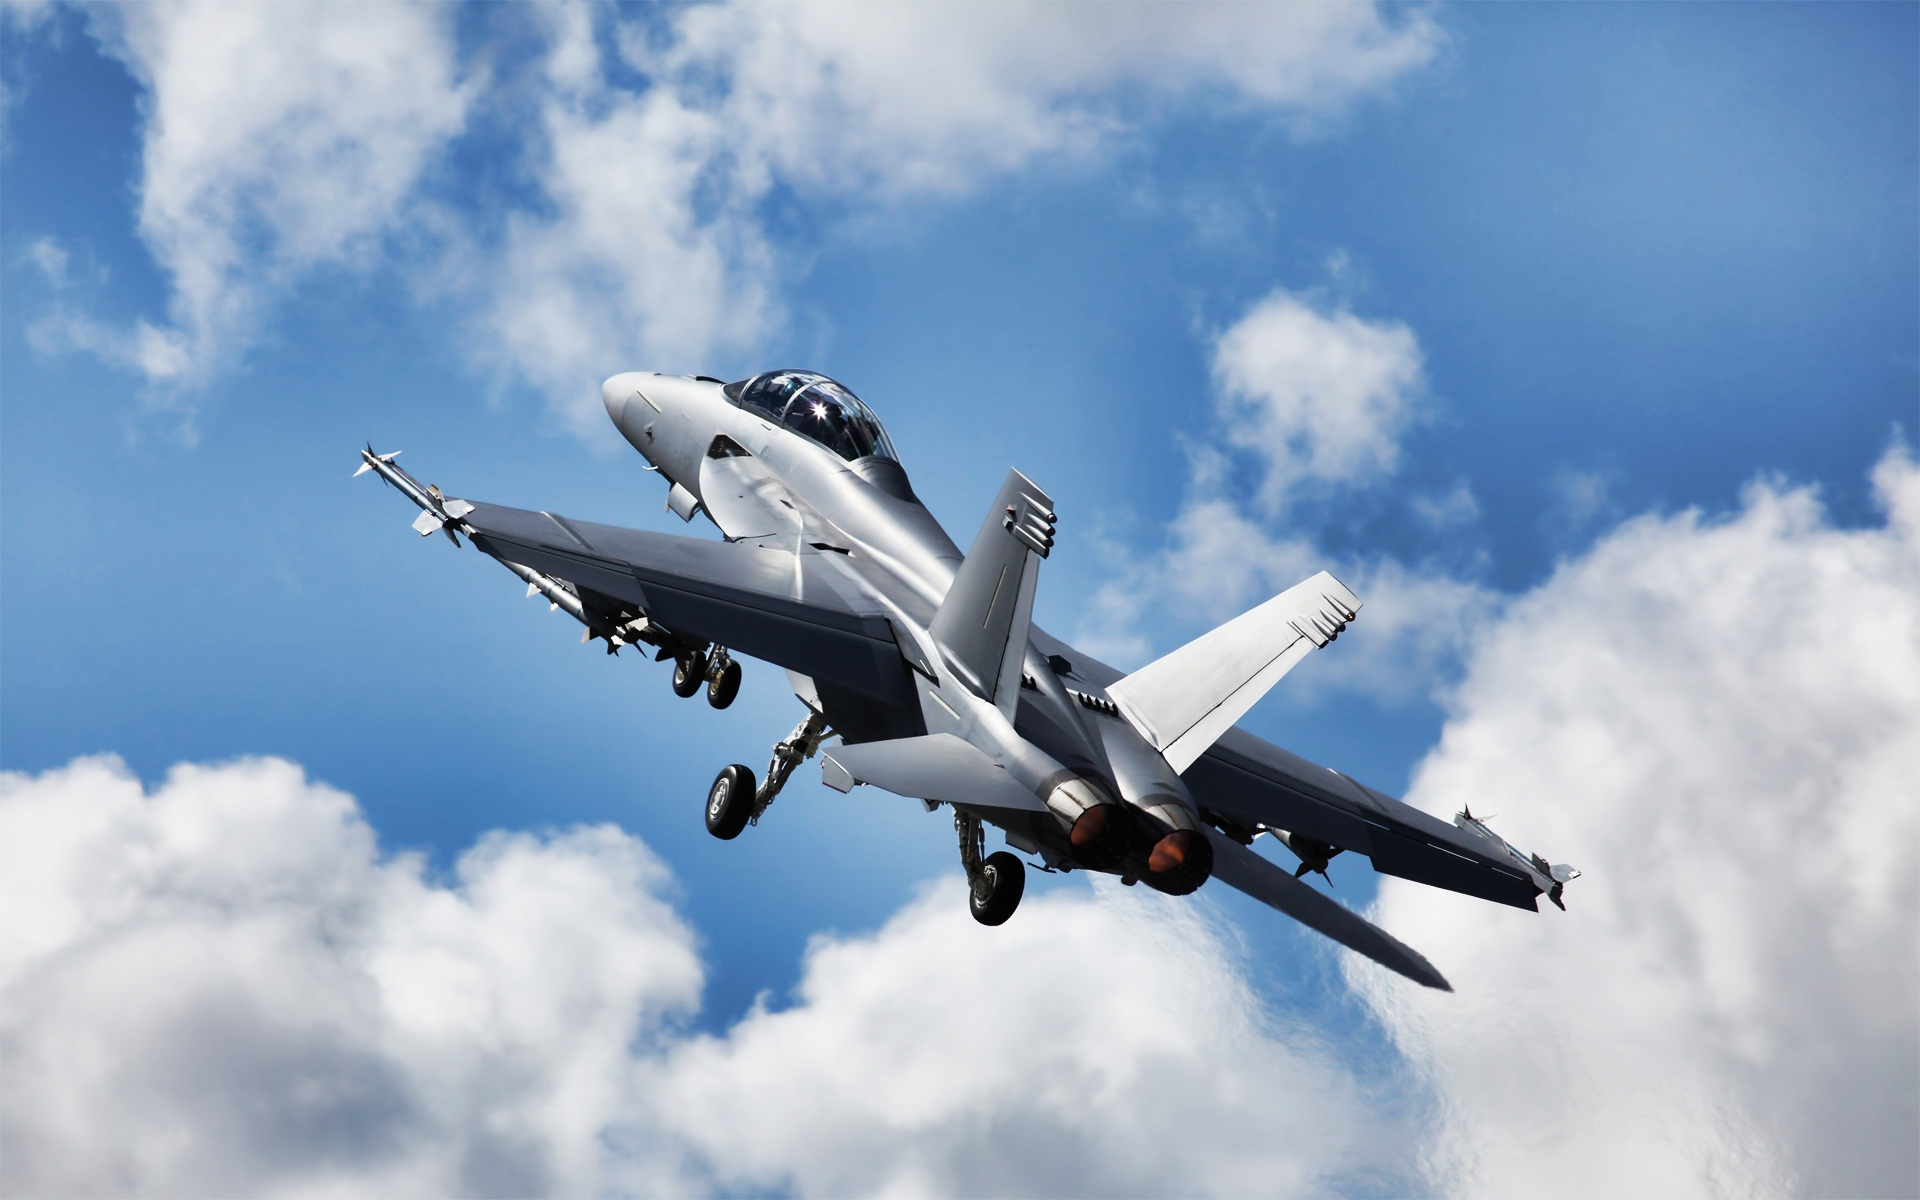 Boeing FA 18 Super Hornet Wallpapers HD Wallpapers 1920x1200